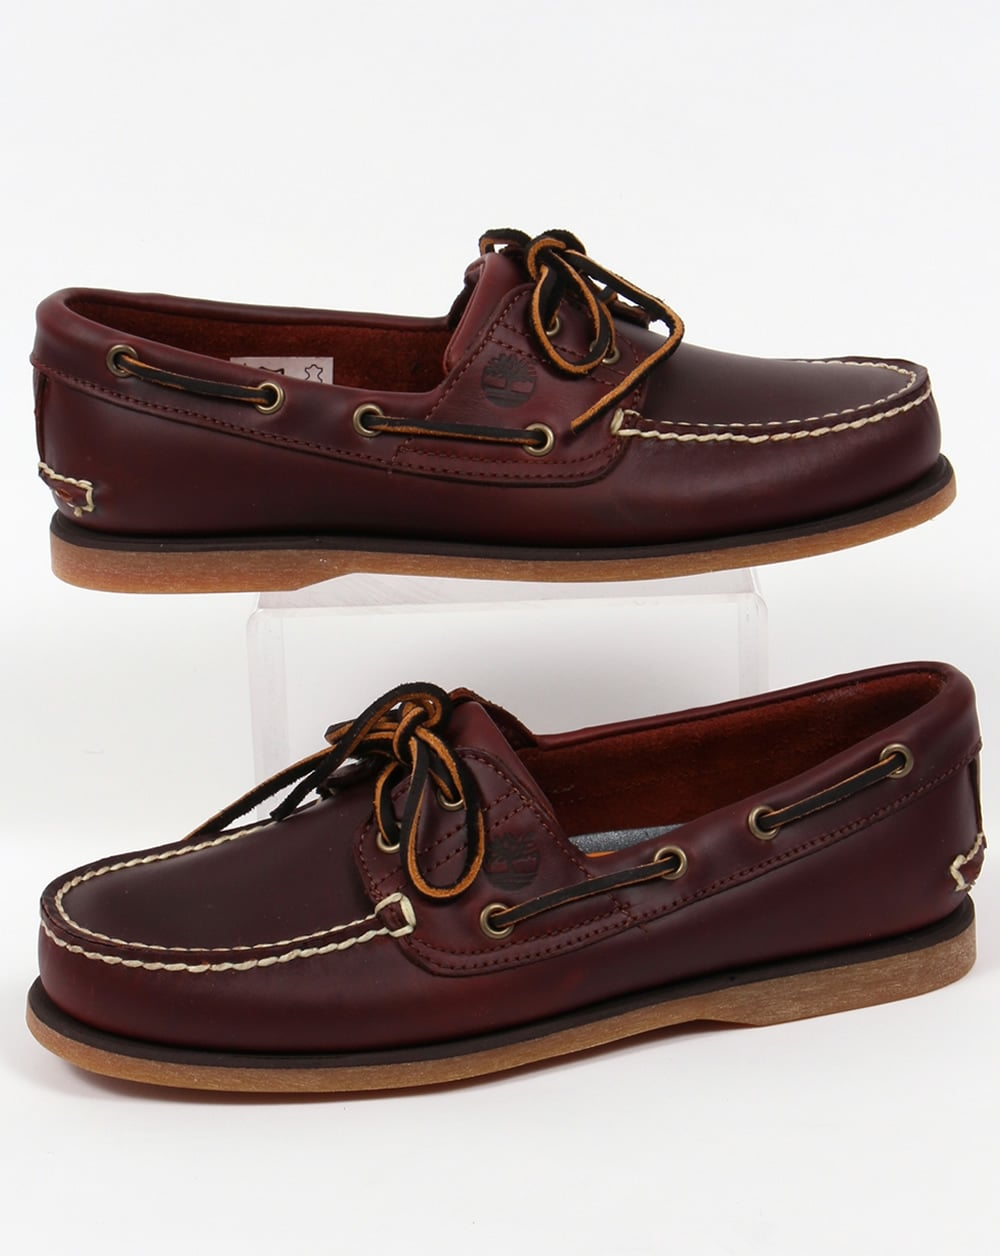 How To Protect Leather Boat Shoes